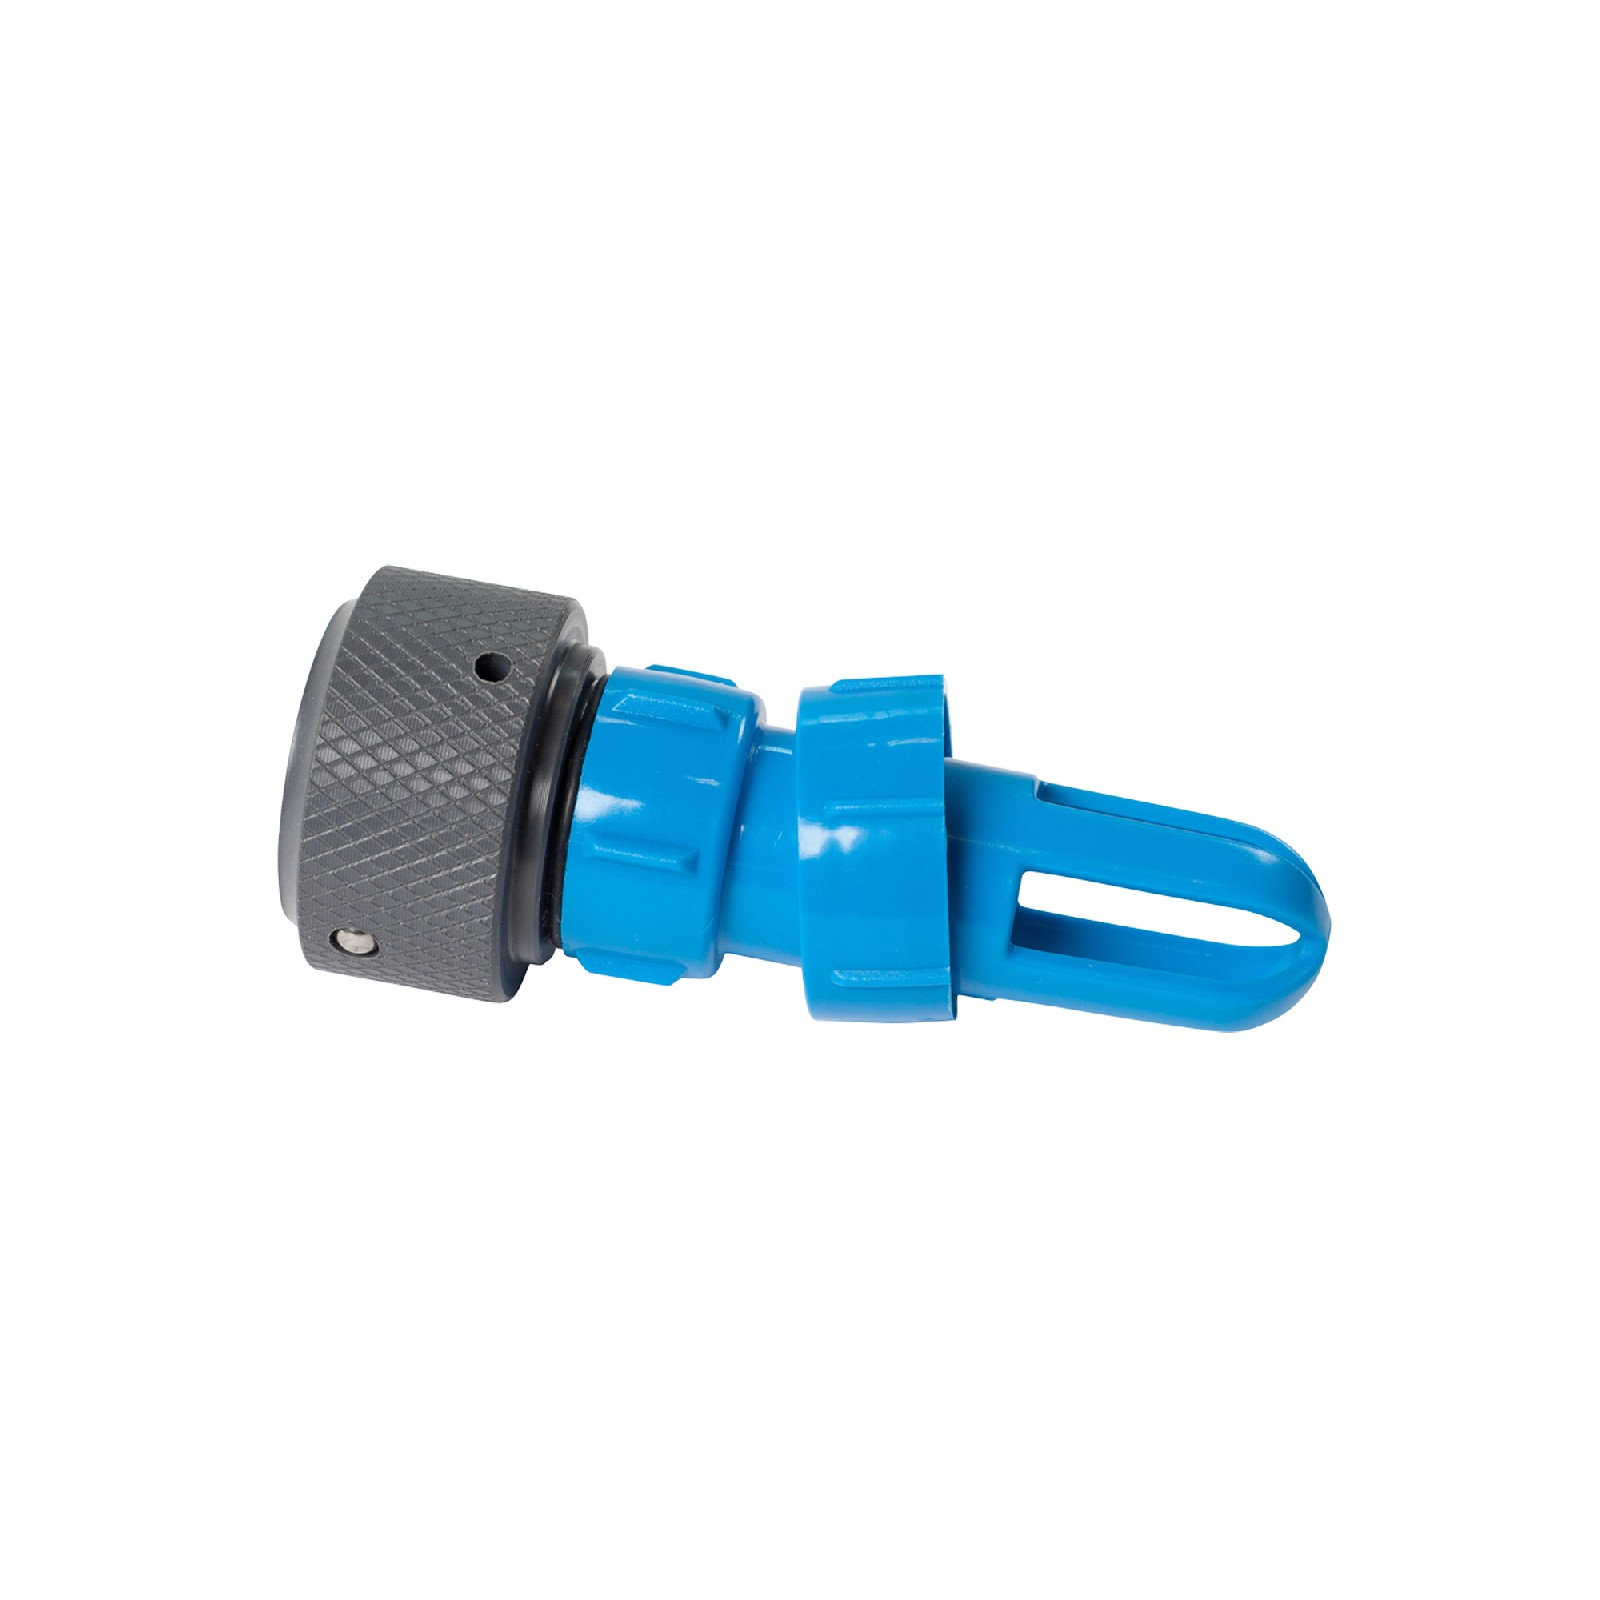 FEMALE QUICK CONNECT — BLUE PERFECT UNION BED VALVE FITTING FATSAC 2018